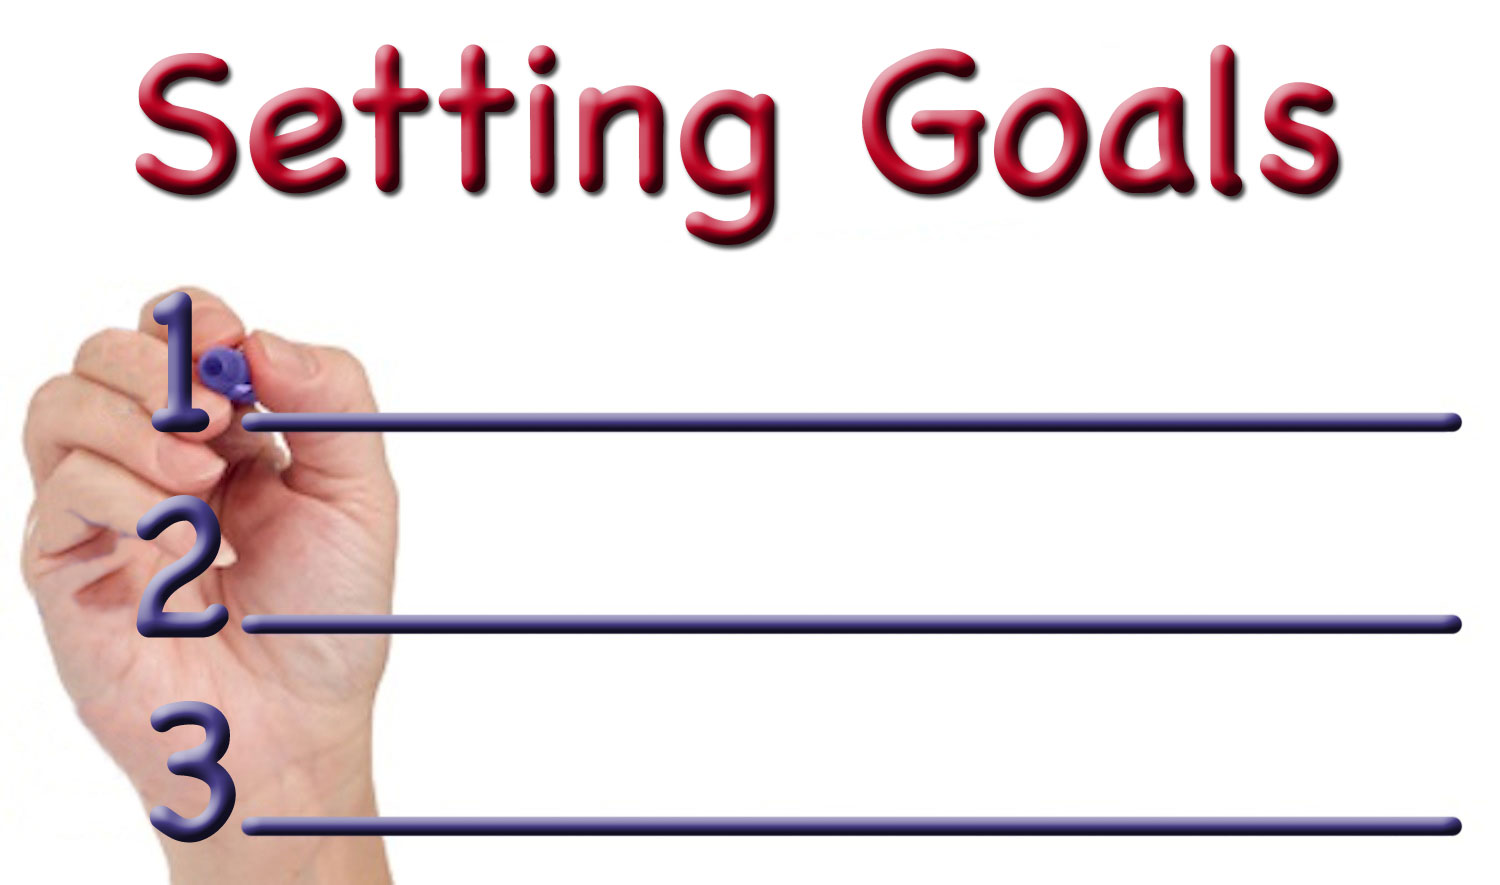 goal setting in brandiwine consultants for brokers and  how to set goals that work